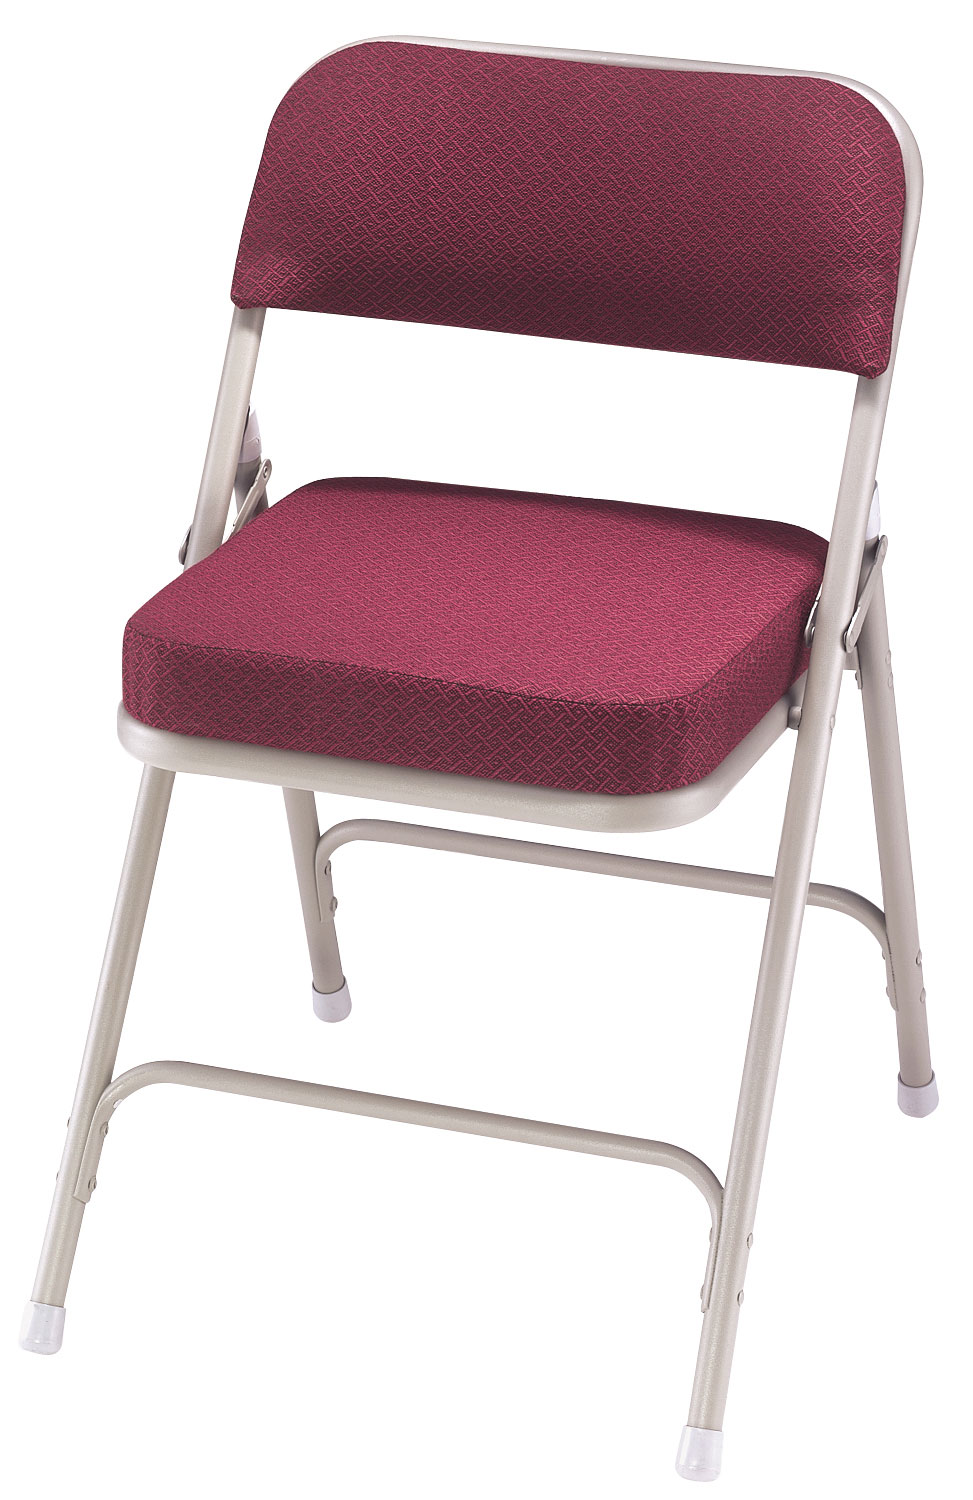 folding chair hinges amazon high padded seat chairs (set of 2) in